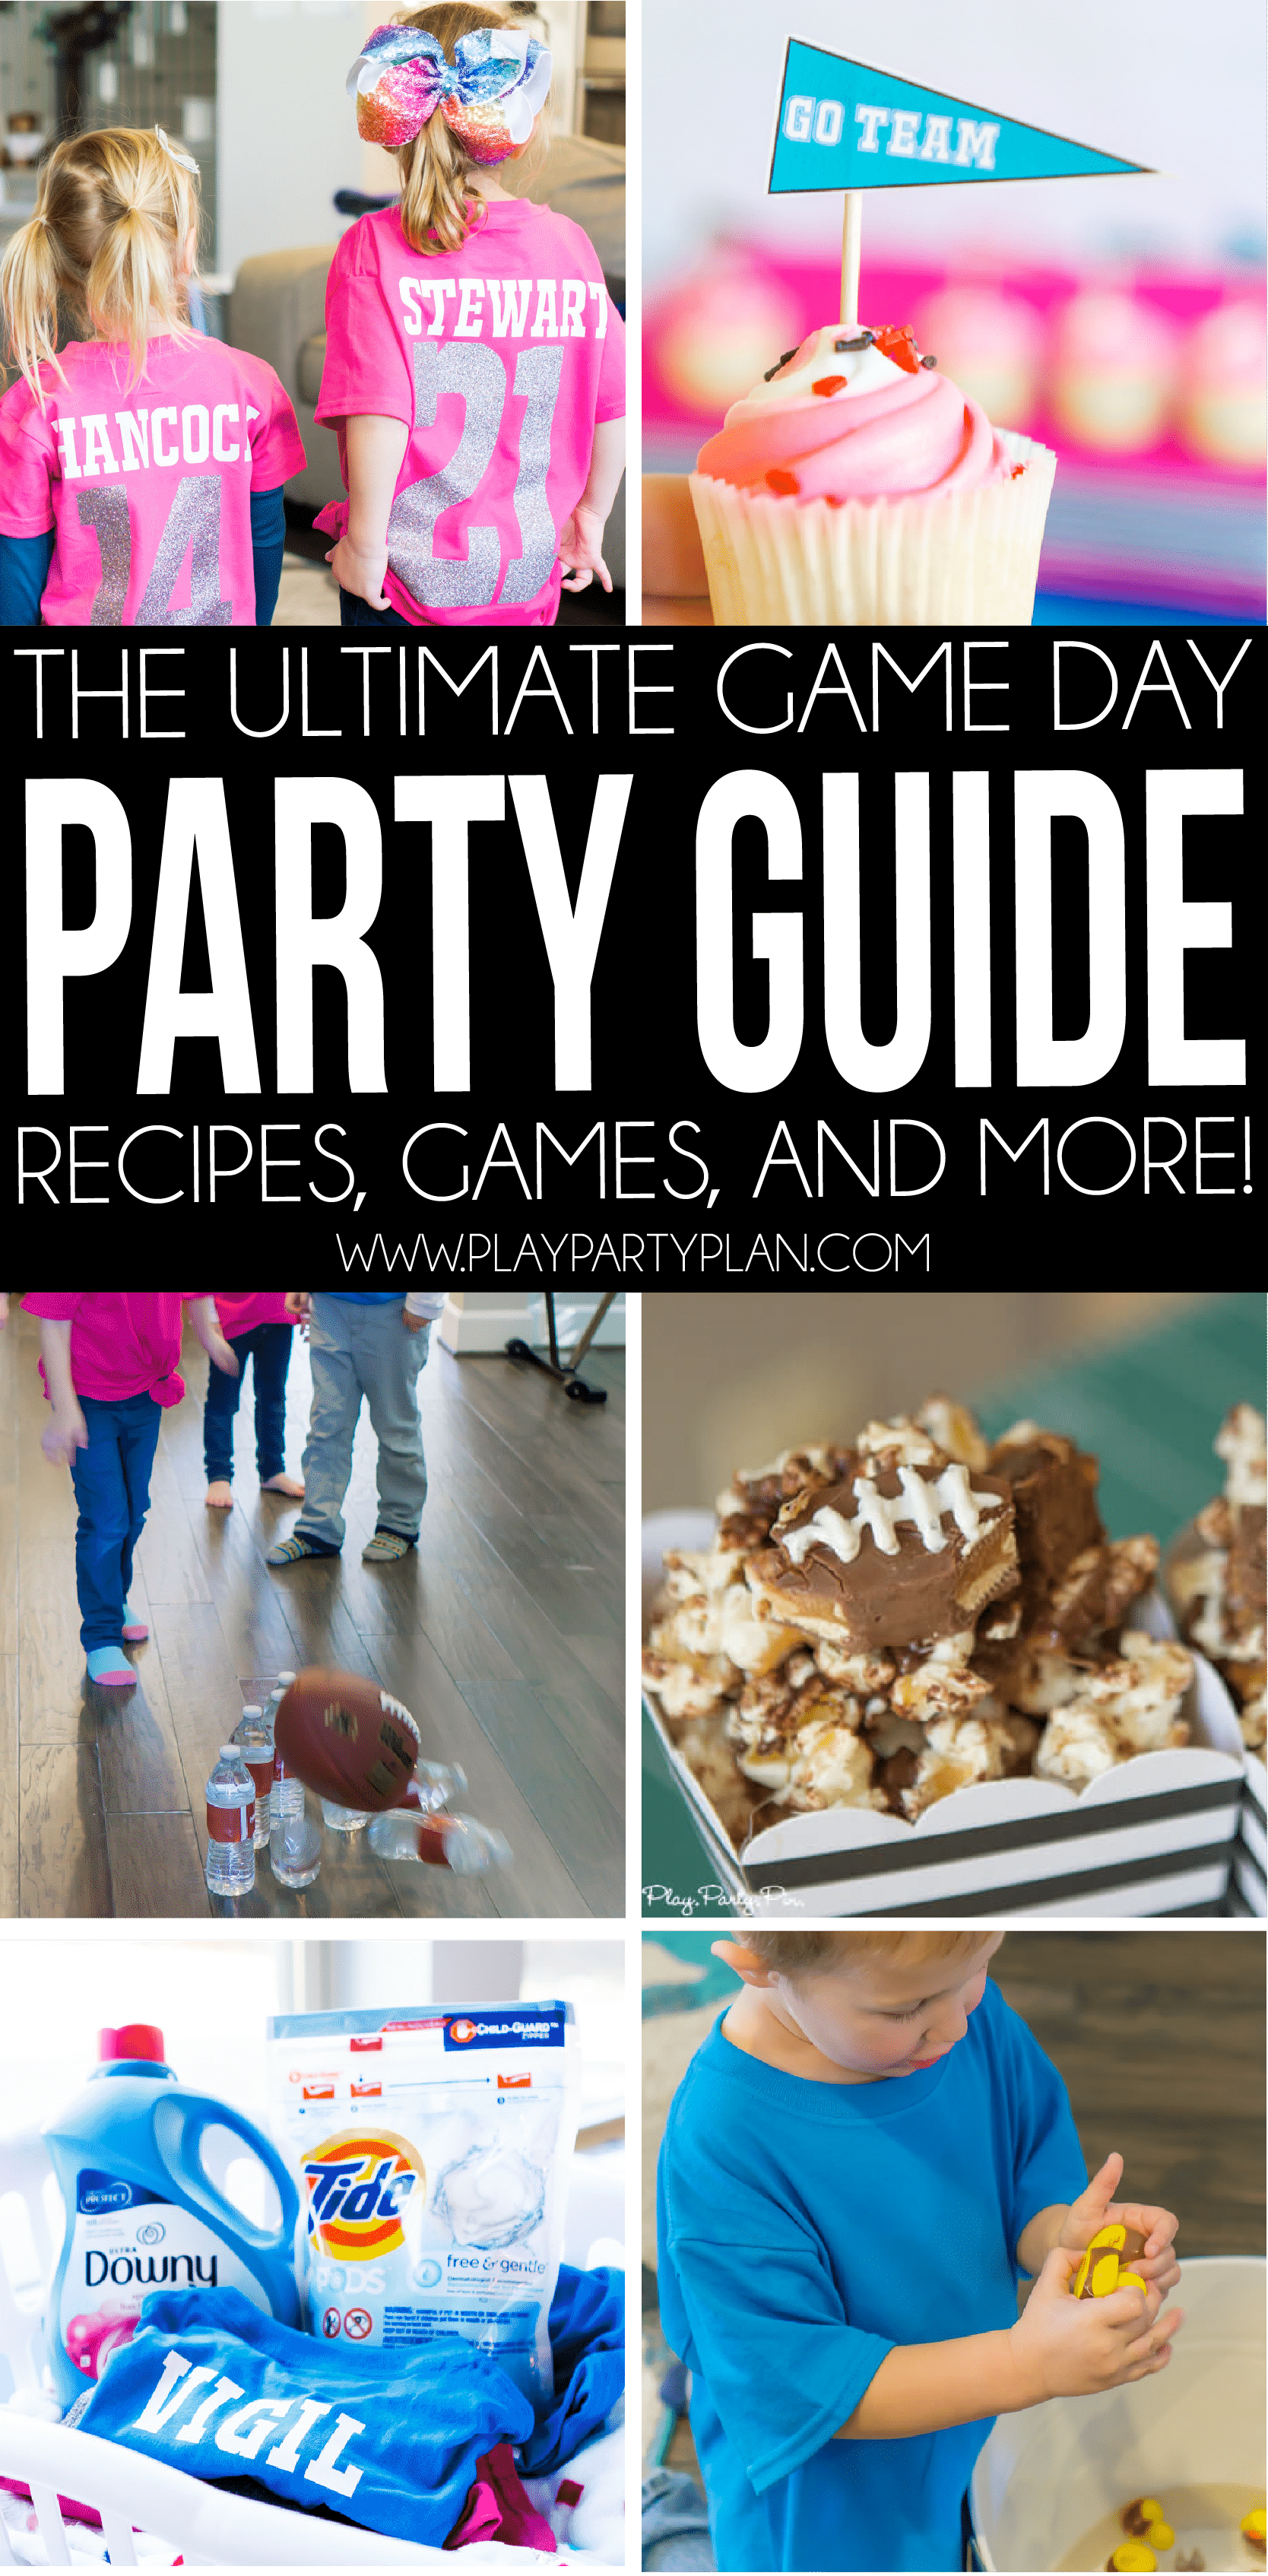 The ultimate Super Bowl party guide - food ideas, decorations, free printables, games, appetizers, desserts, and more! Everything you need for one amazing football party!